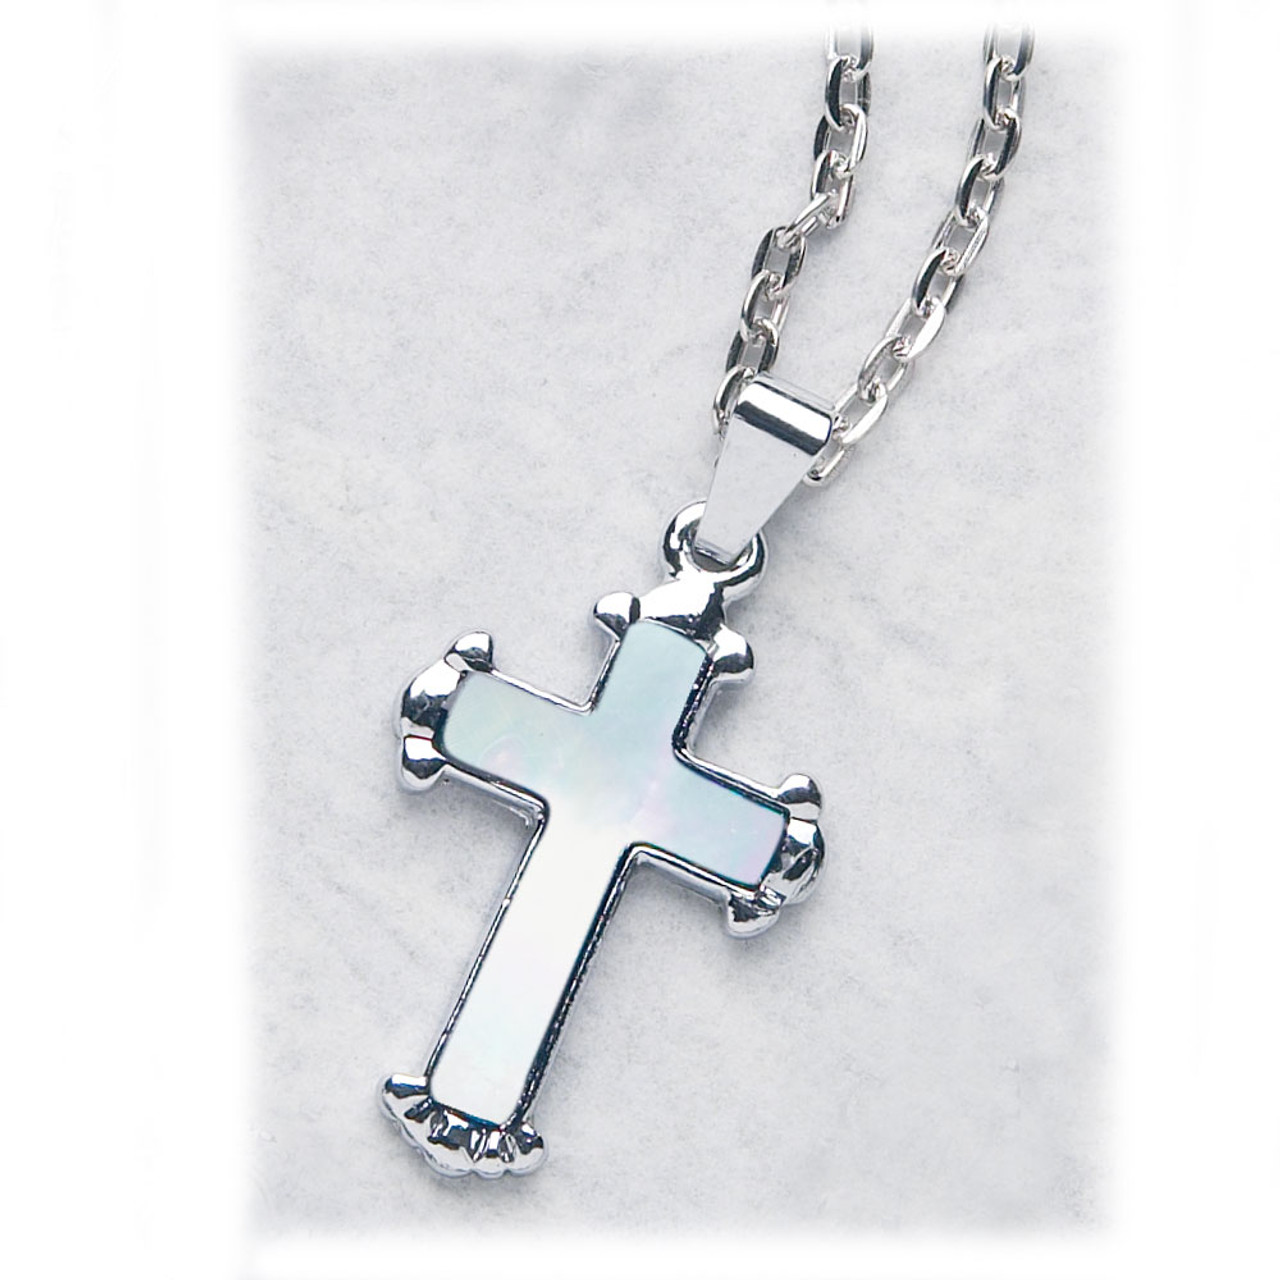 Silver Plated Cross Pendant 18IN Chain